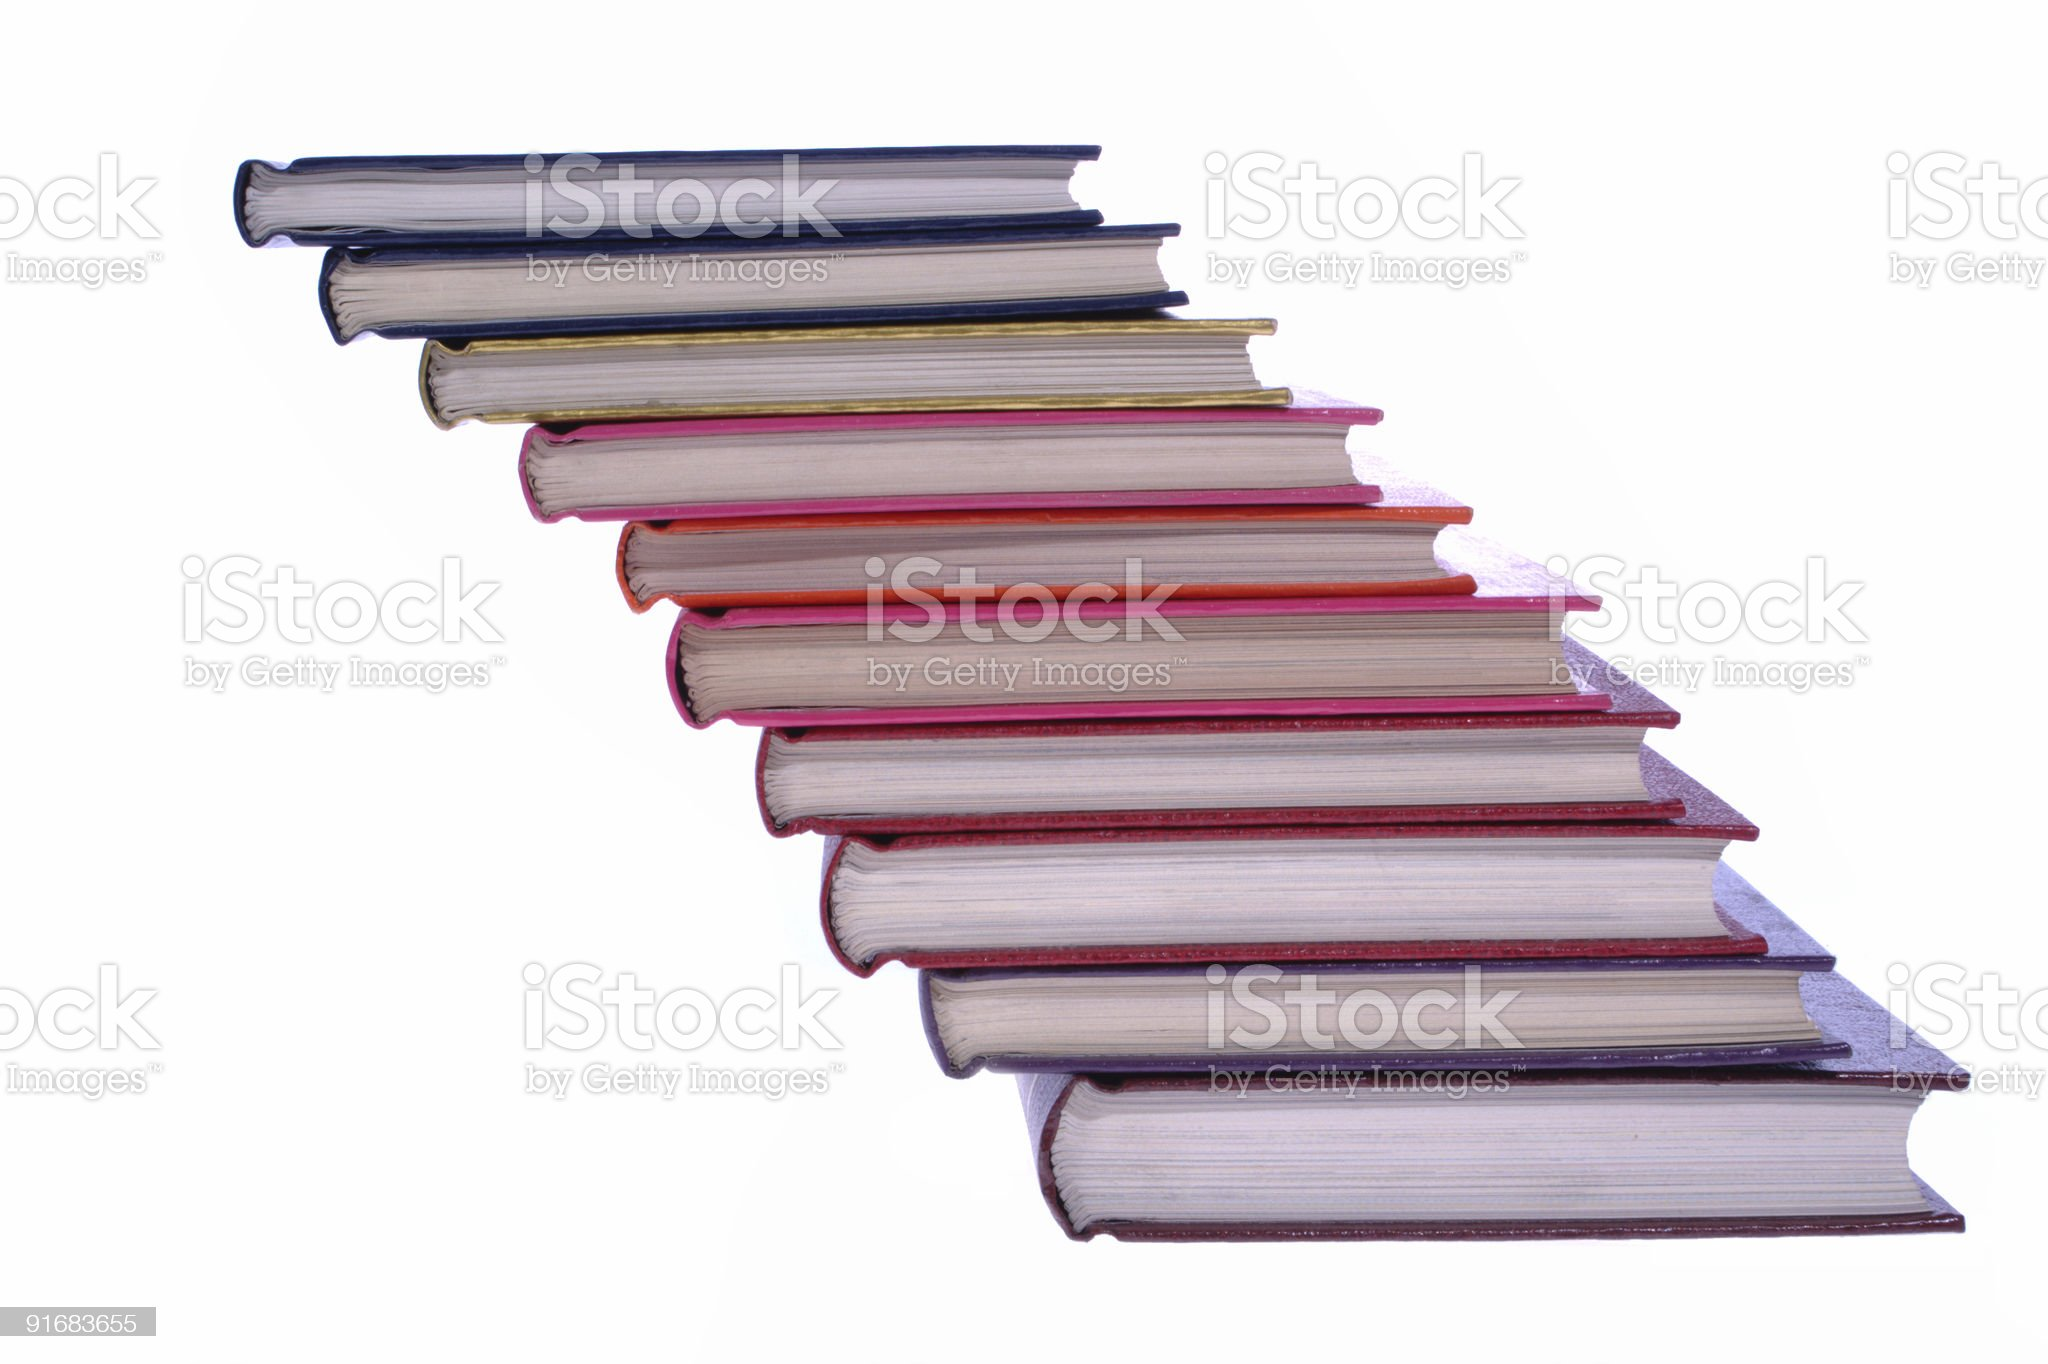 hardcover books stack isolated on white royalty-free stock photo